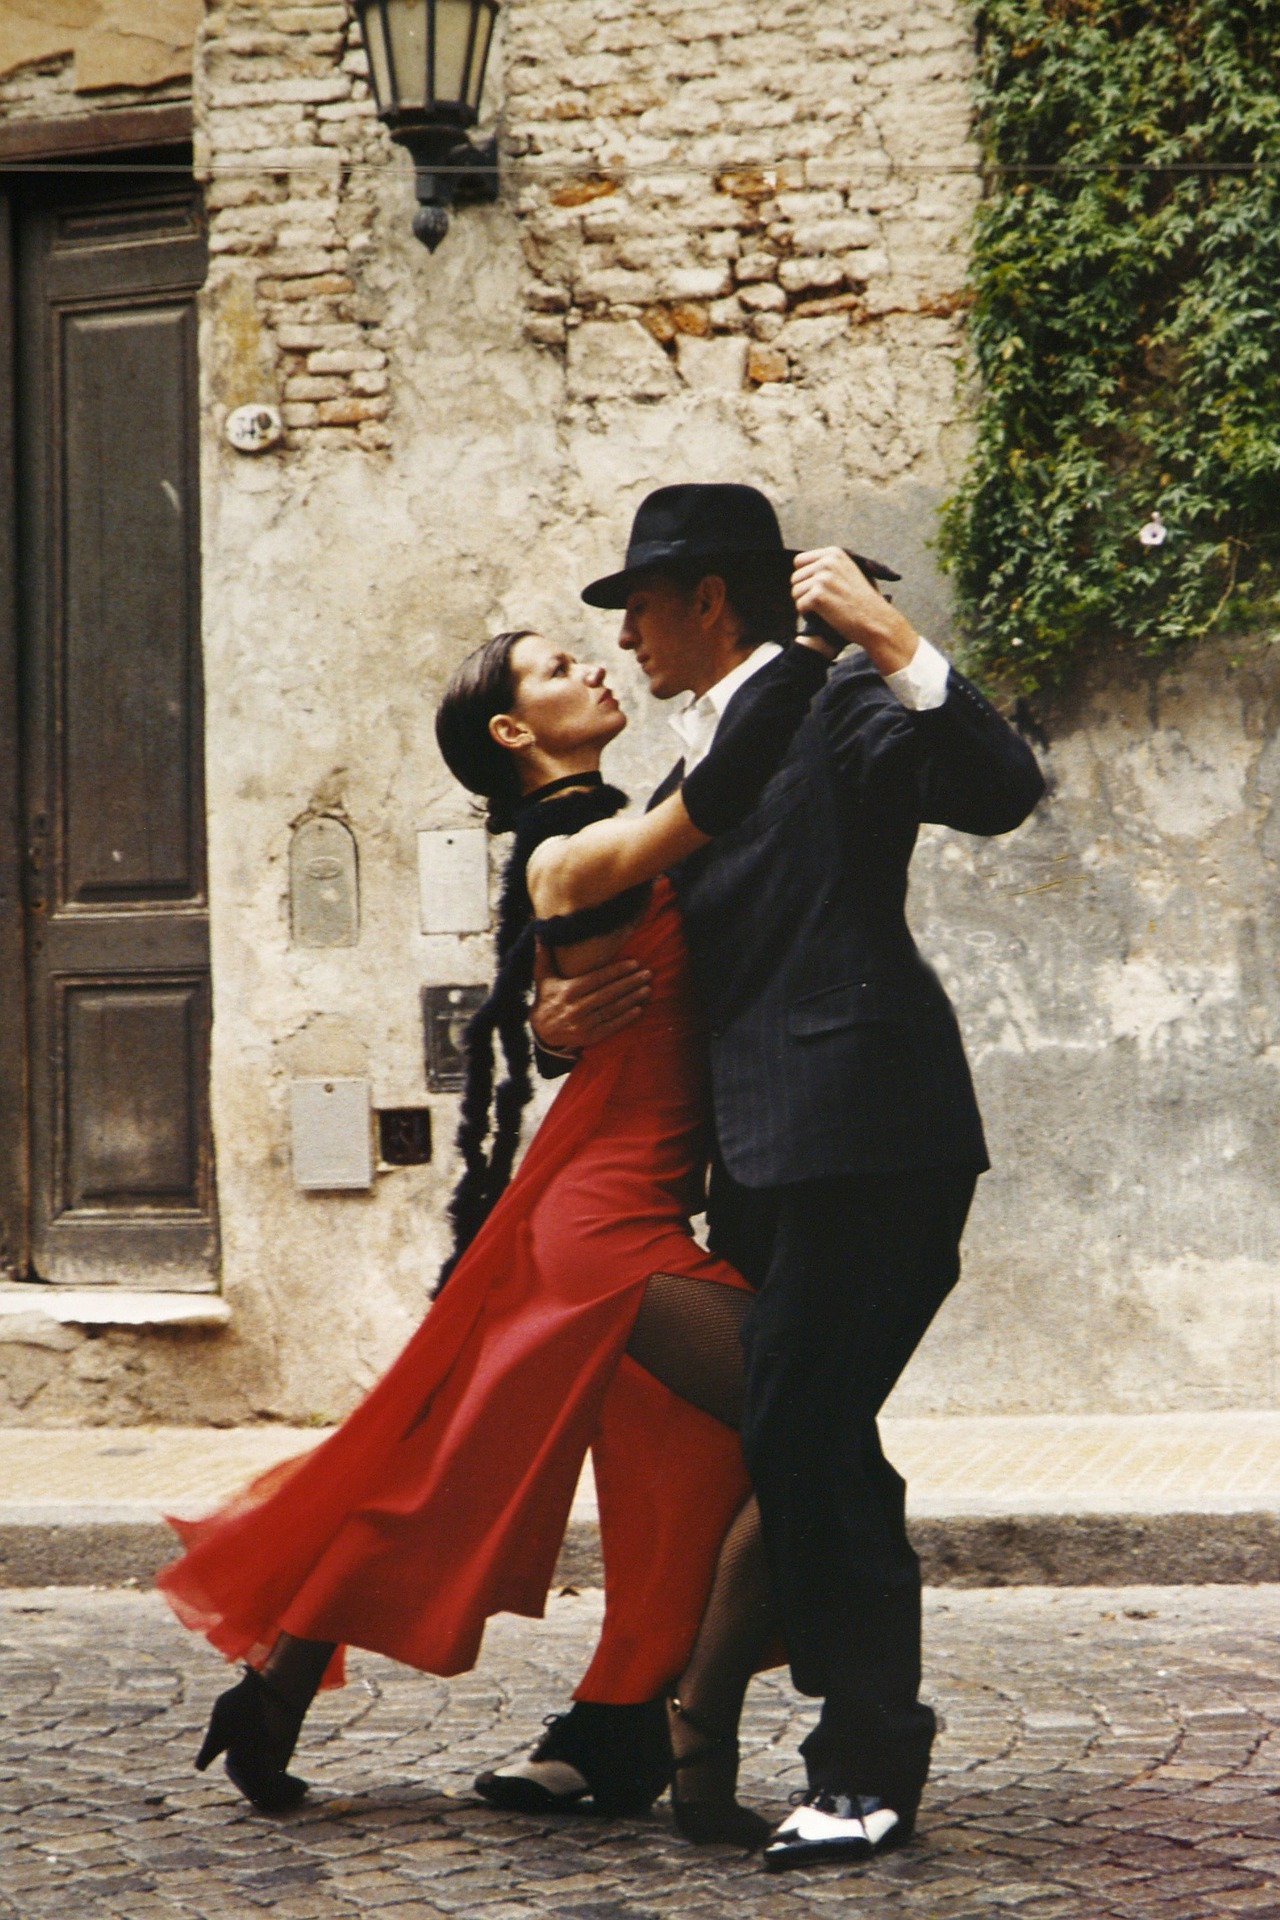 street tango in buenos aires